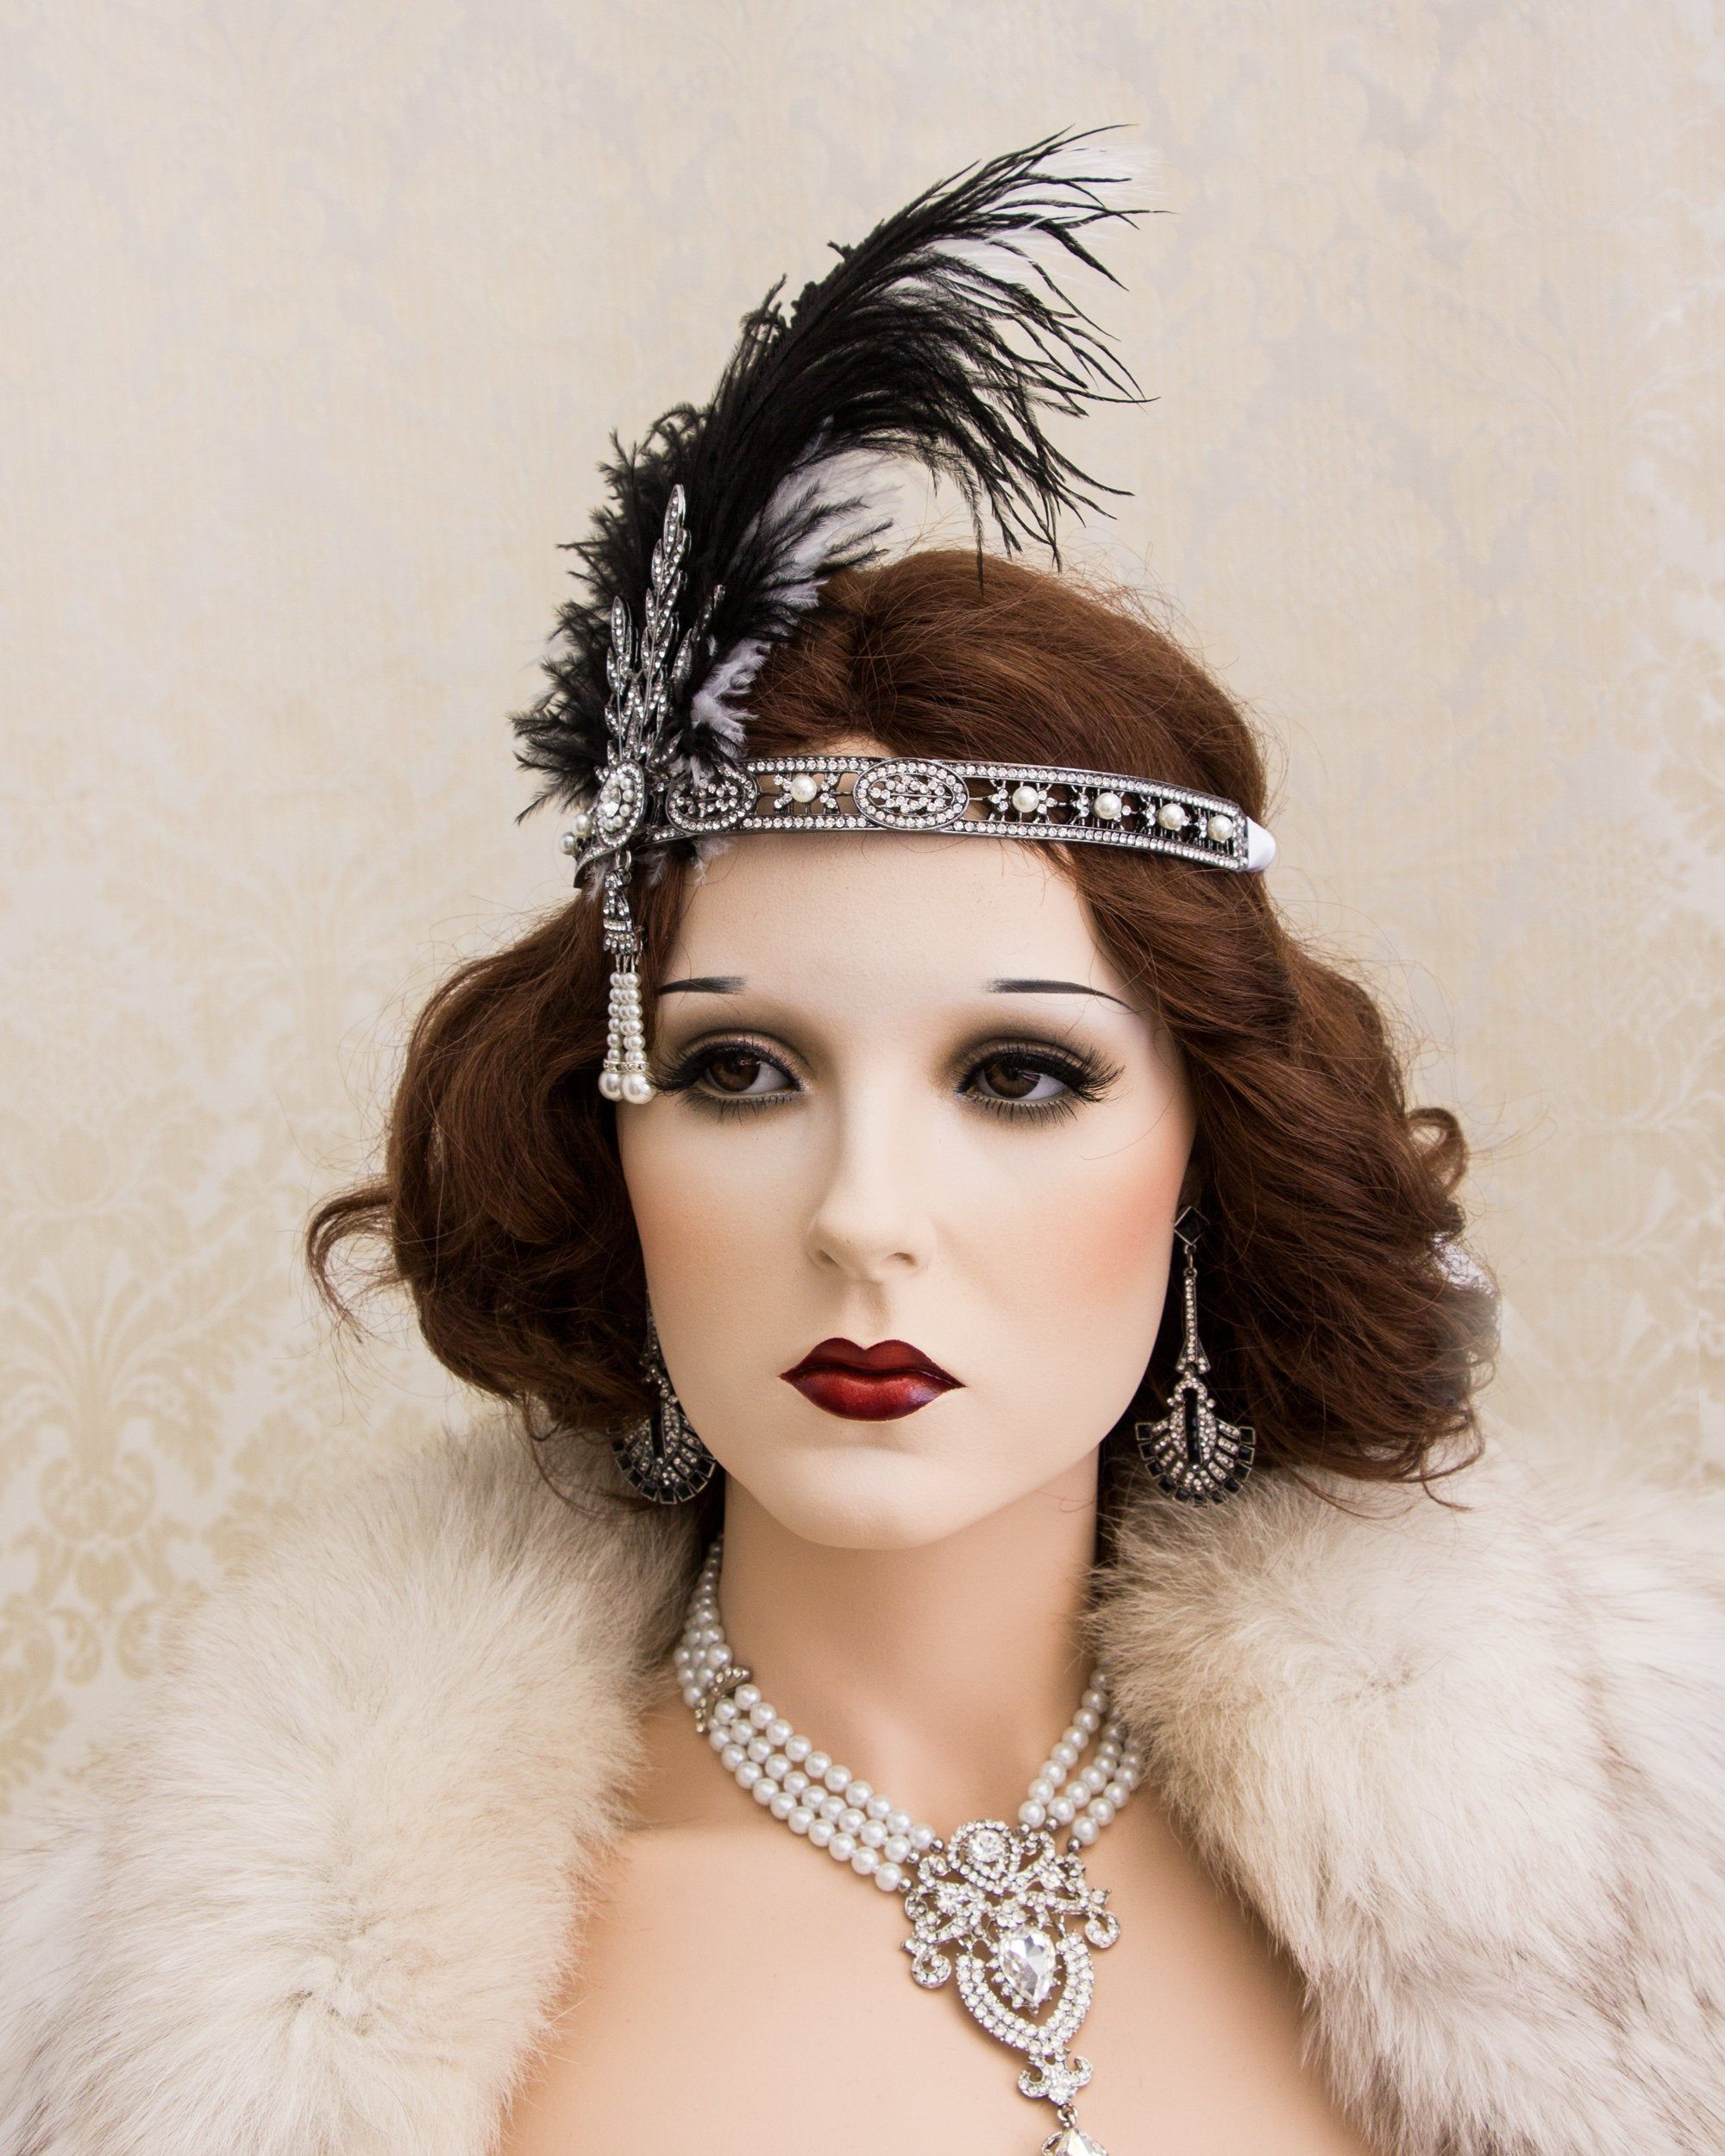 Great Gatsby Headband with Ostrich Feathers, Art Deco Headband, New Year's Eve Party Daisy Costume Headpiece